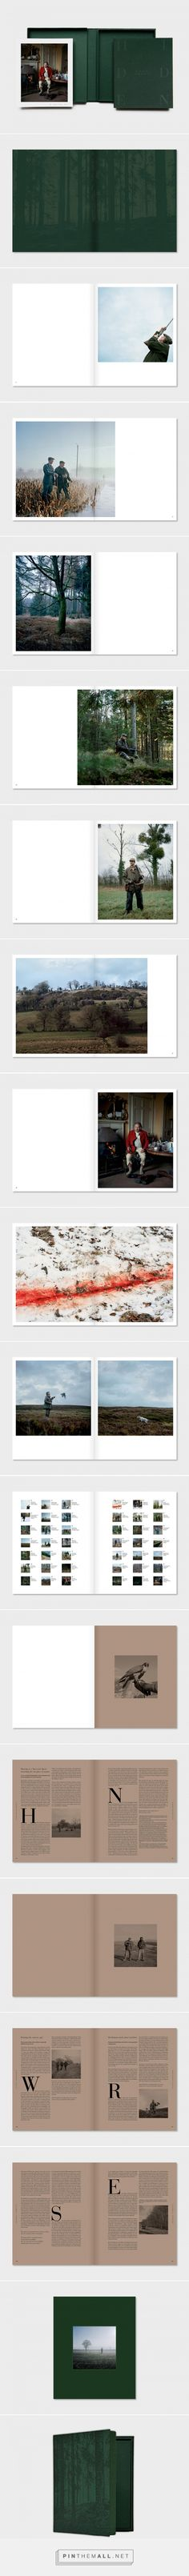 #layout #photobook #book Studio Martin Steiner › Michael Tummings - created via https://pinthemall.net